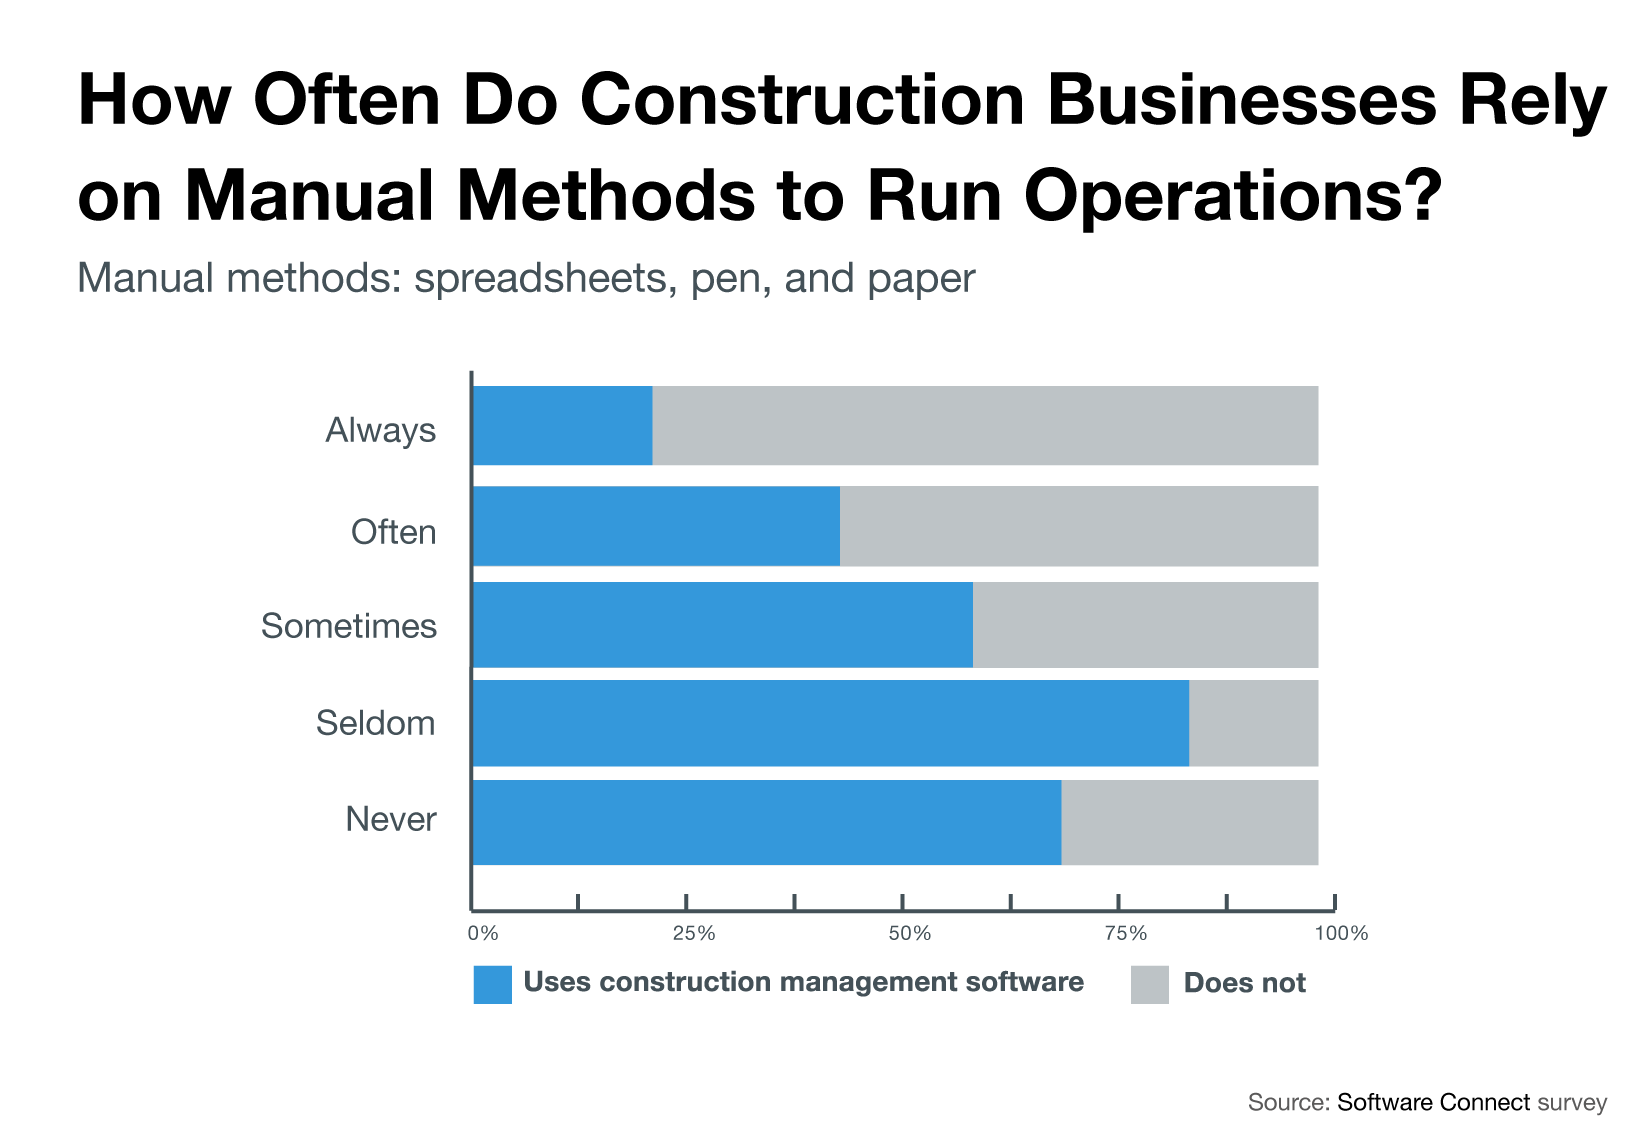 Chart comparing how frequently construction software users vs non-users rely on manual methods to run operations